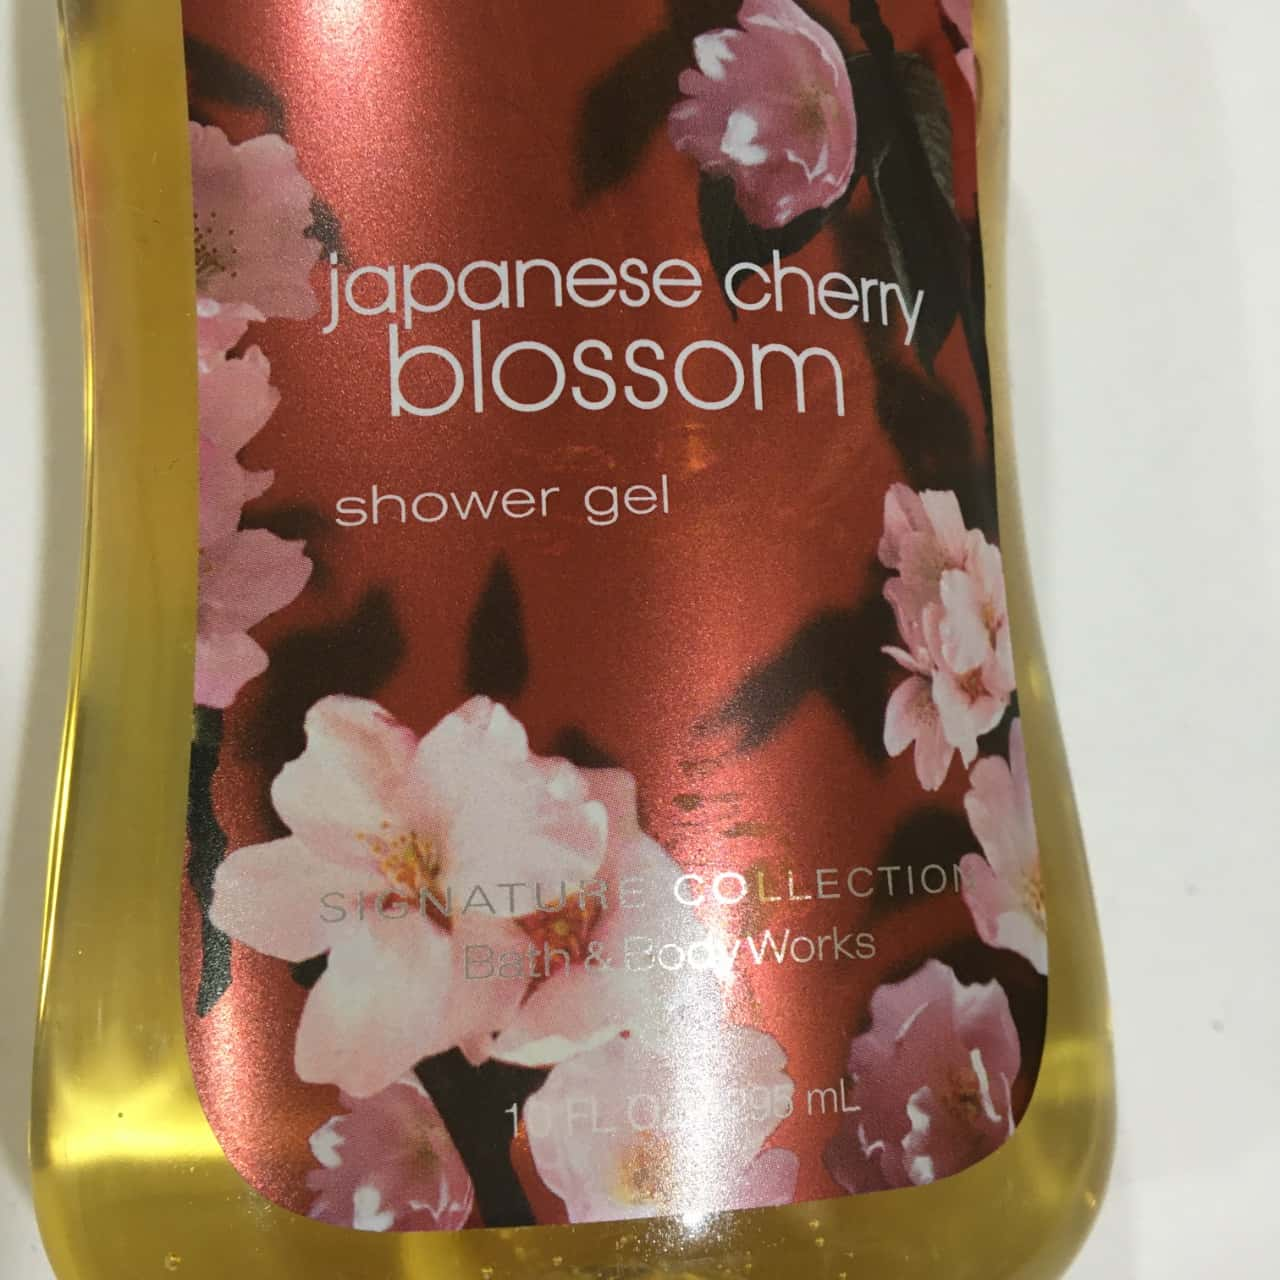 Bath & Body Works Signature Collections